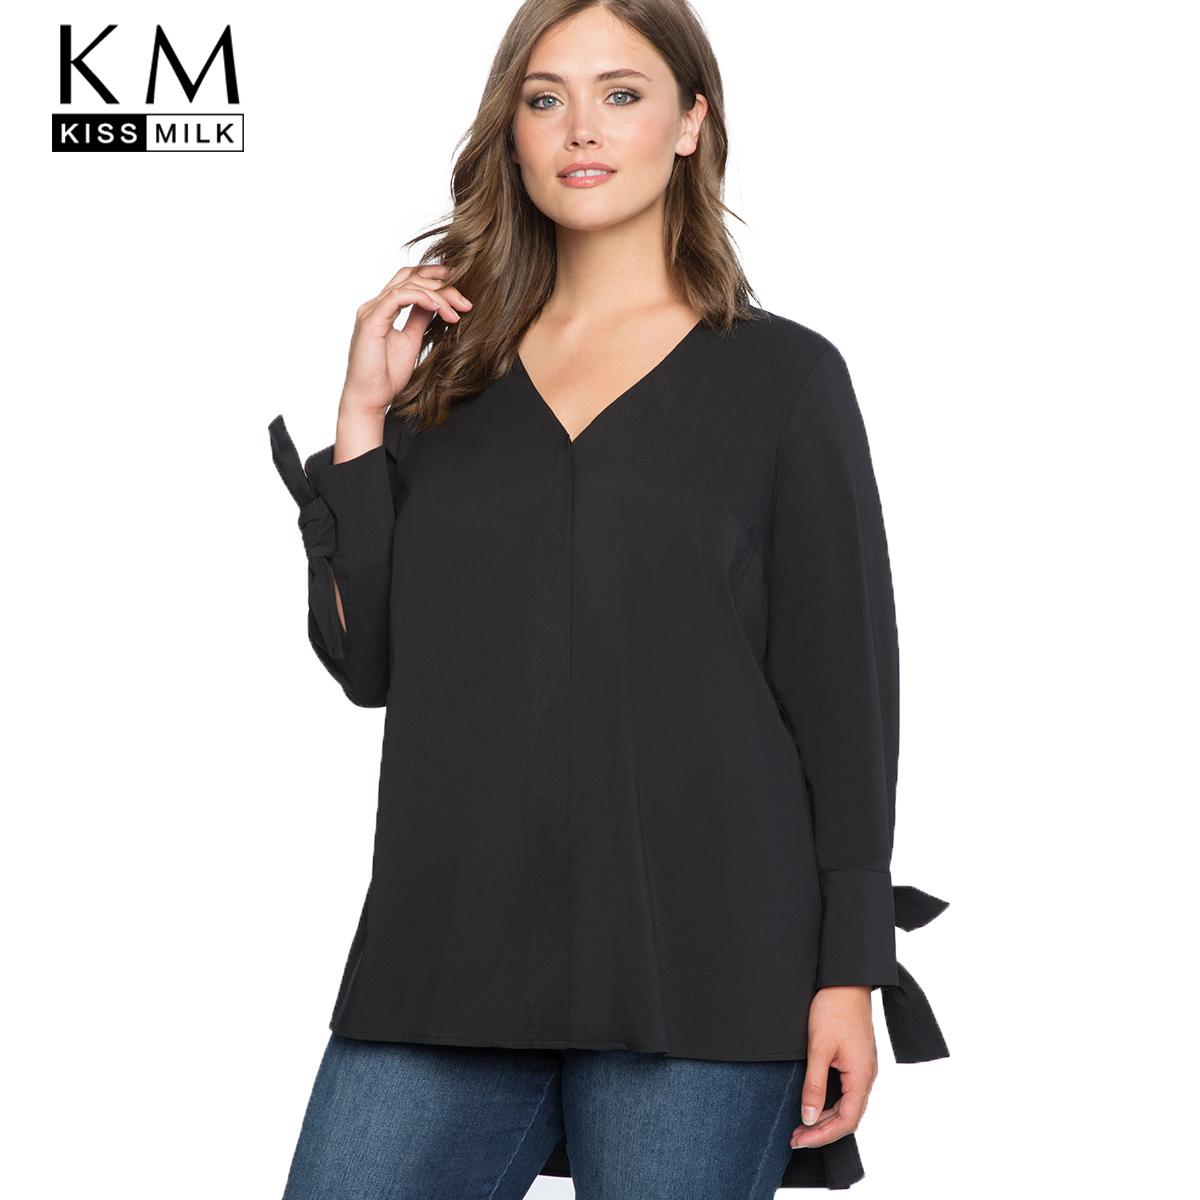 Kissmilk 2017 Plus Size Solid Black V-neck Women Shirts Full Sleeve Lace Up  Split Bow Female Clothing Sexy Lady Big Size Tops Female Clothing Plus Size  Tops ... 23d6e7d02a7b